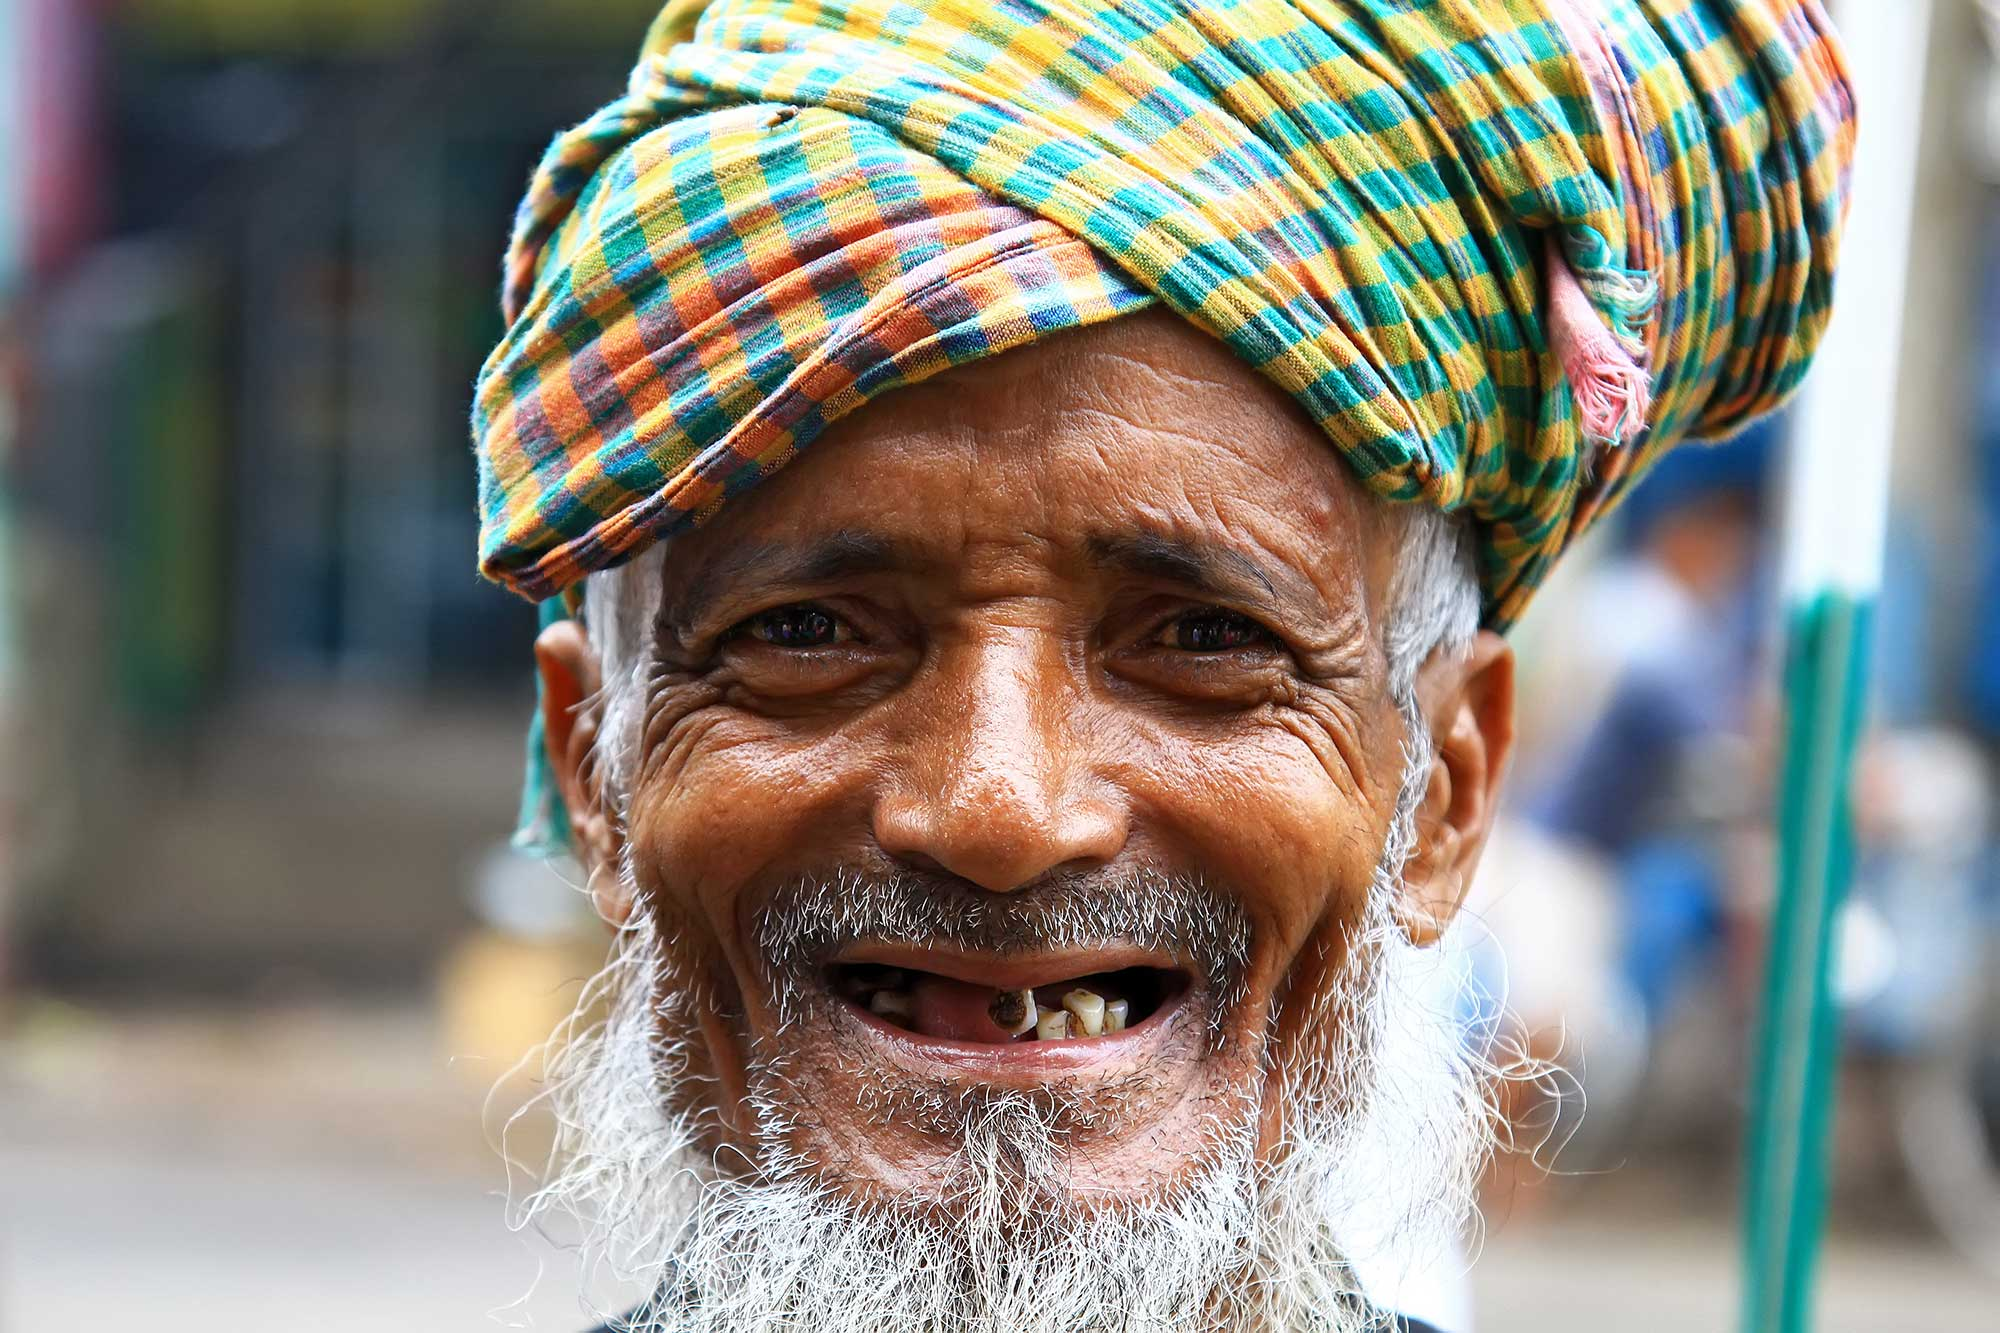 portrait-smiling-man-with-no-teeth-kolkata-india